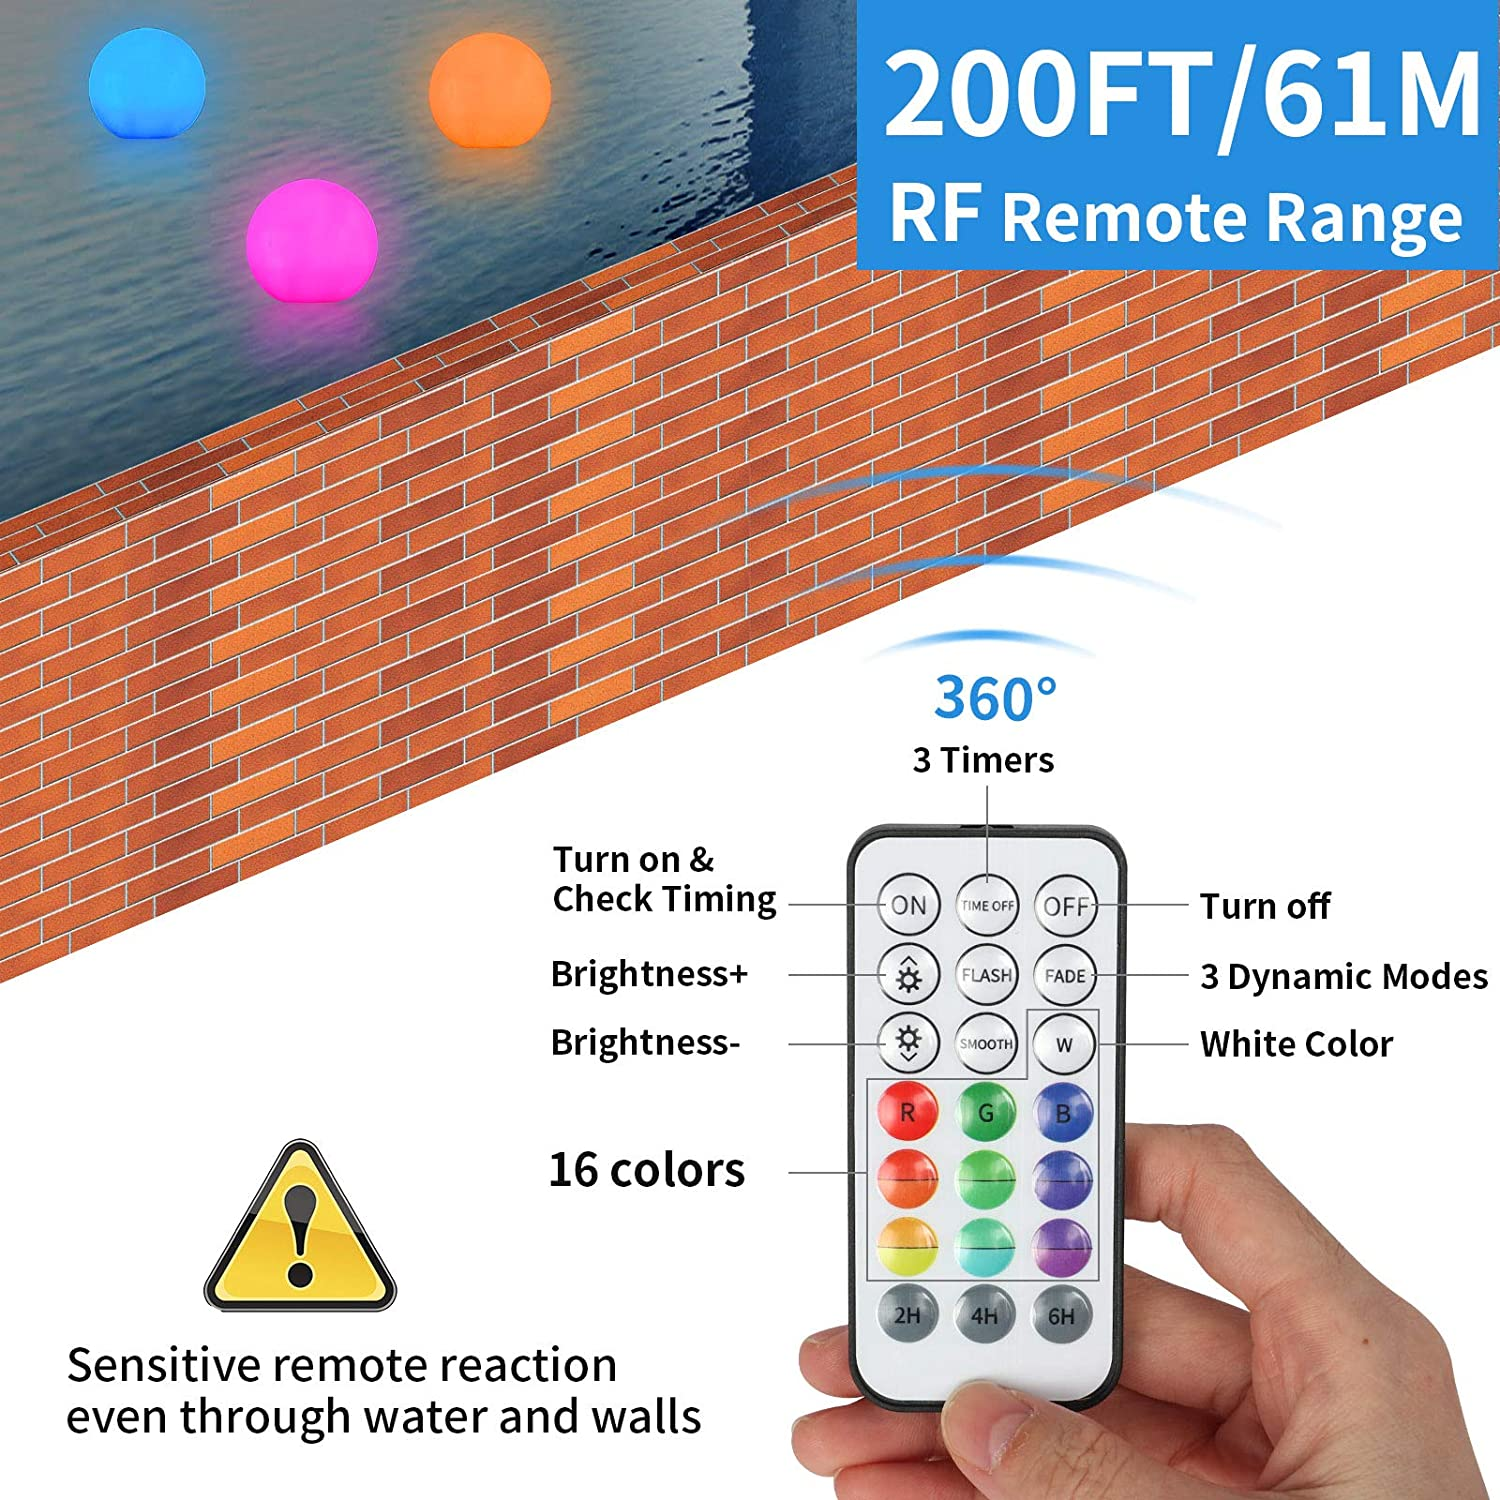 Homly Floating Led Pool Lights with Remote RF Light Up Pool Balls Pool Decor Outdoor Indoor IP67 Waterproof Pool Toys Hot Tub Bathtub Light Toy 16 Color Changing Glow Balls Battery Powered